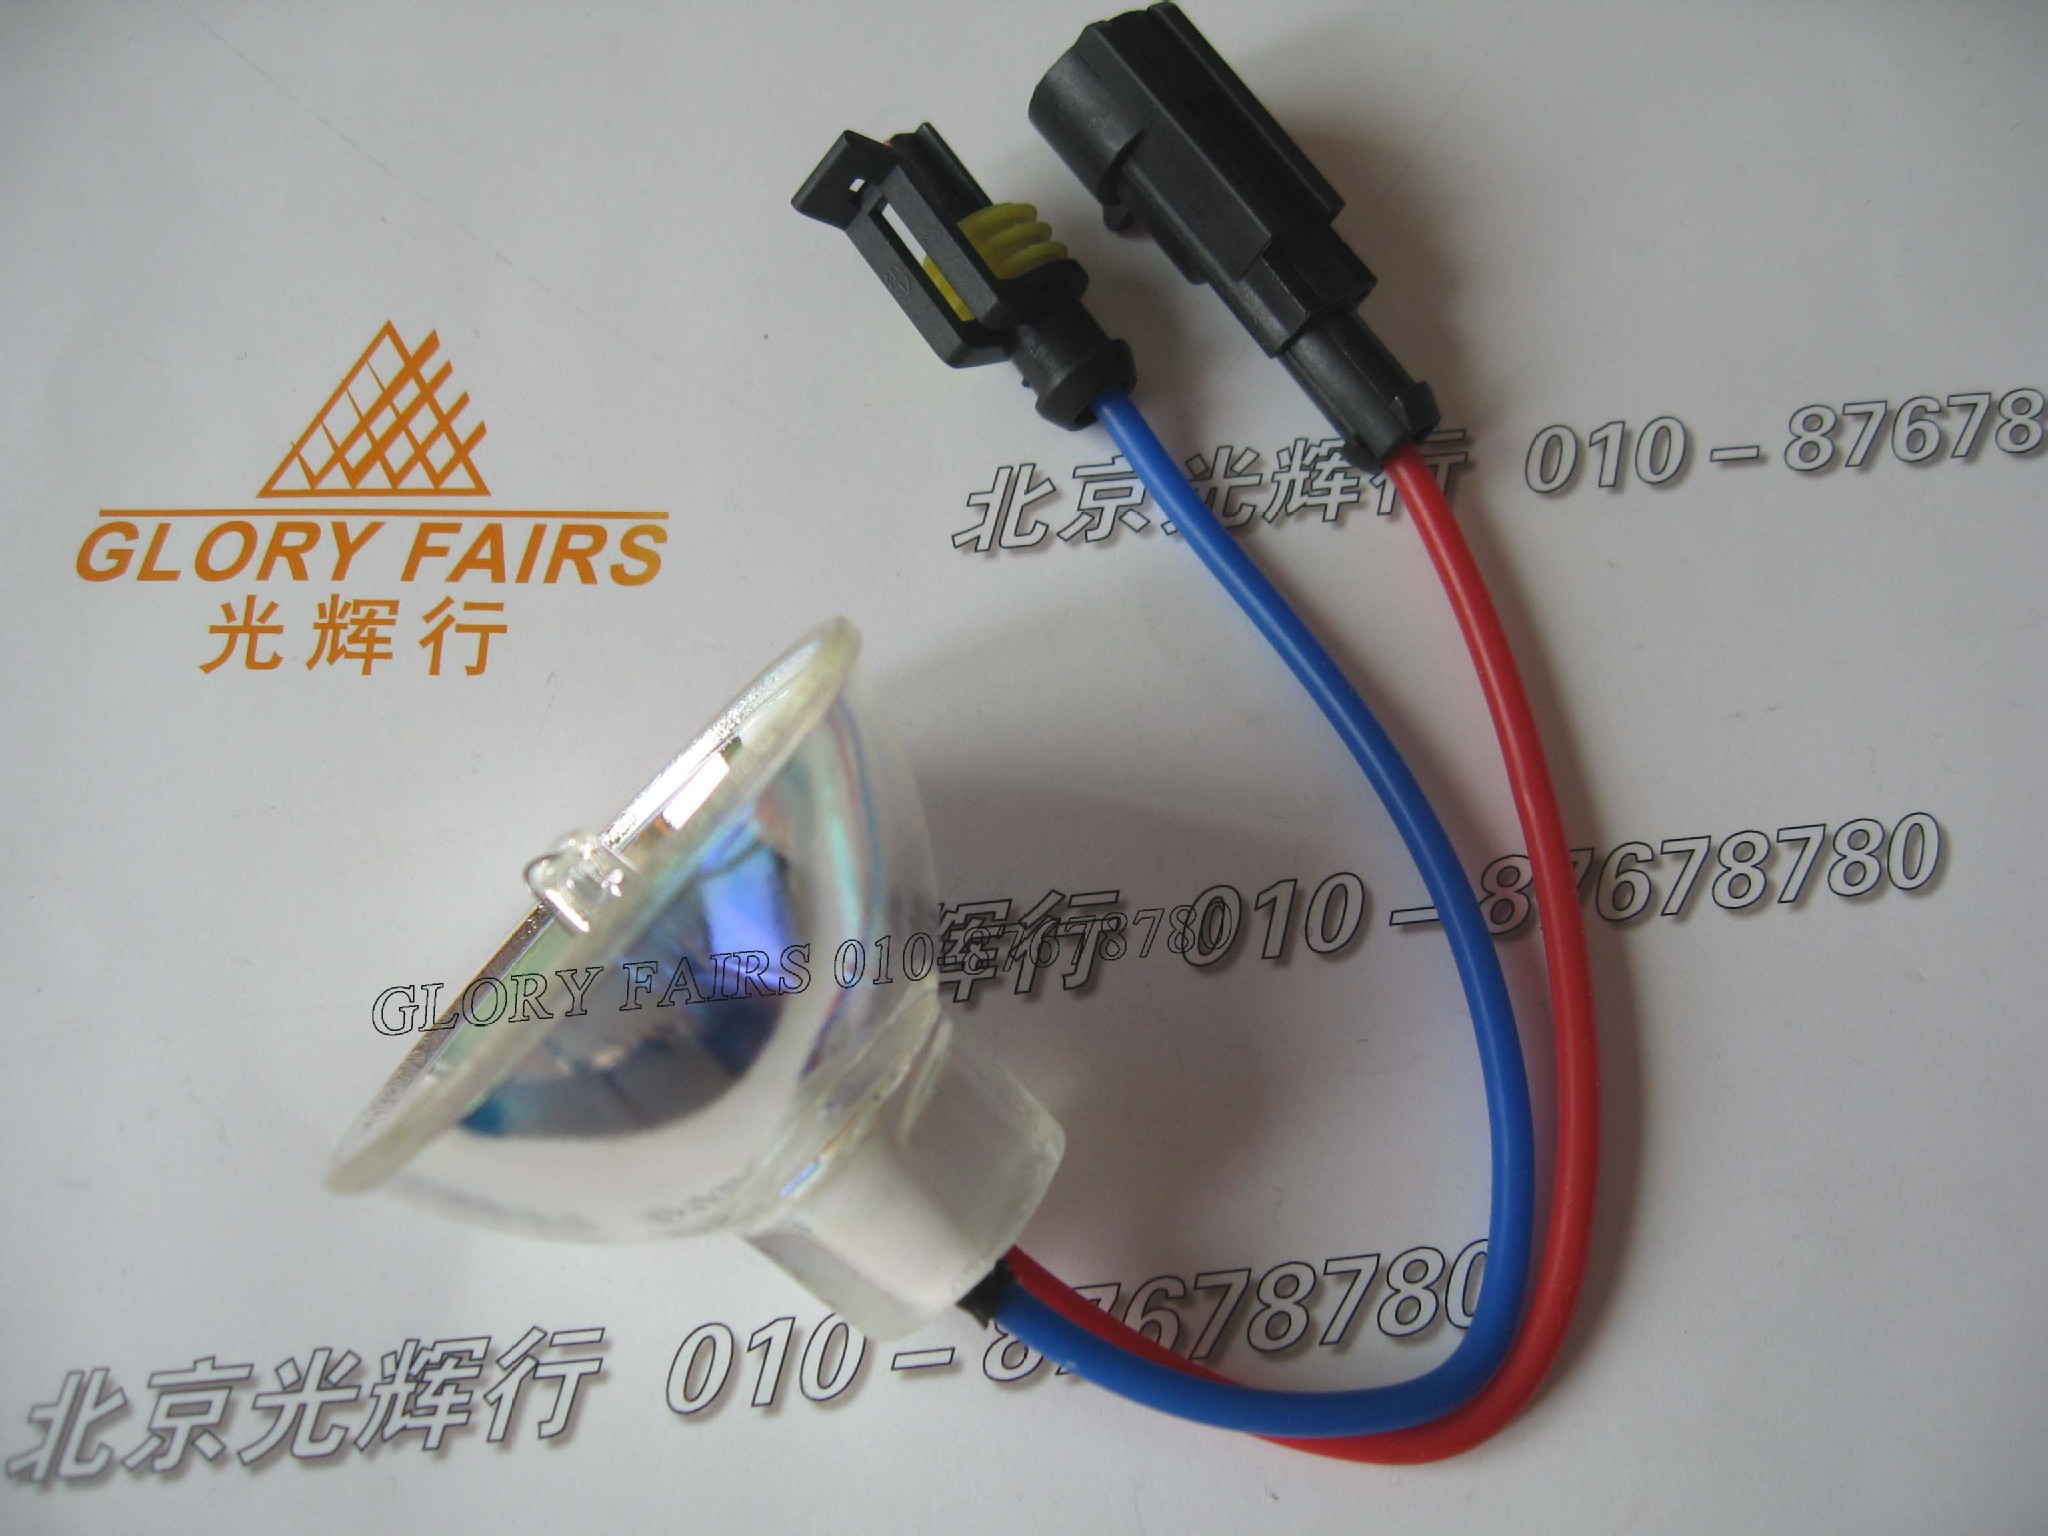 50w xenon lamp with reflector cable and connectors,for endoscope light source,50W bulb